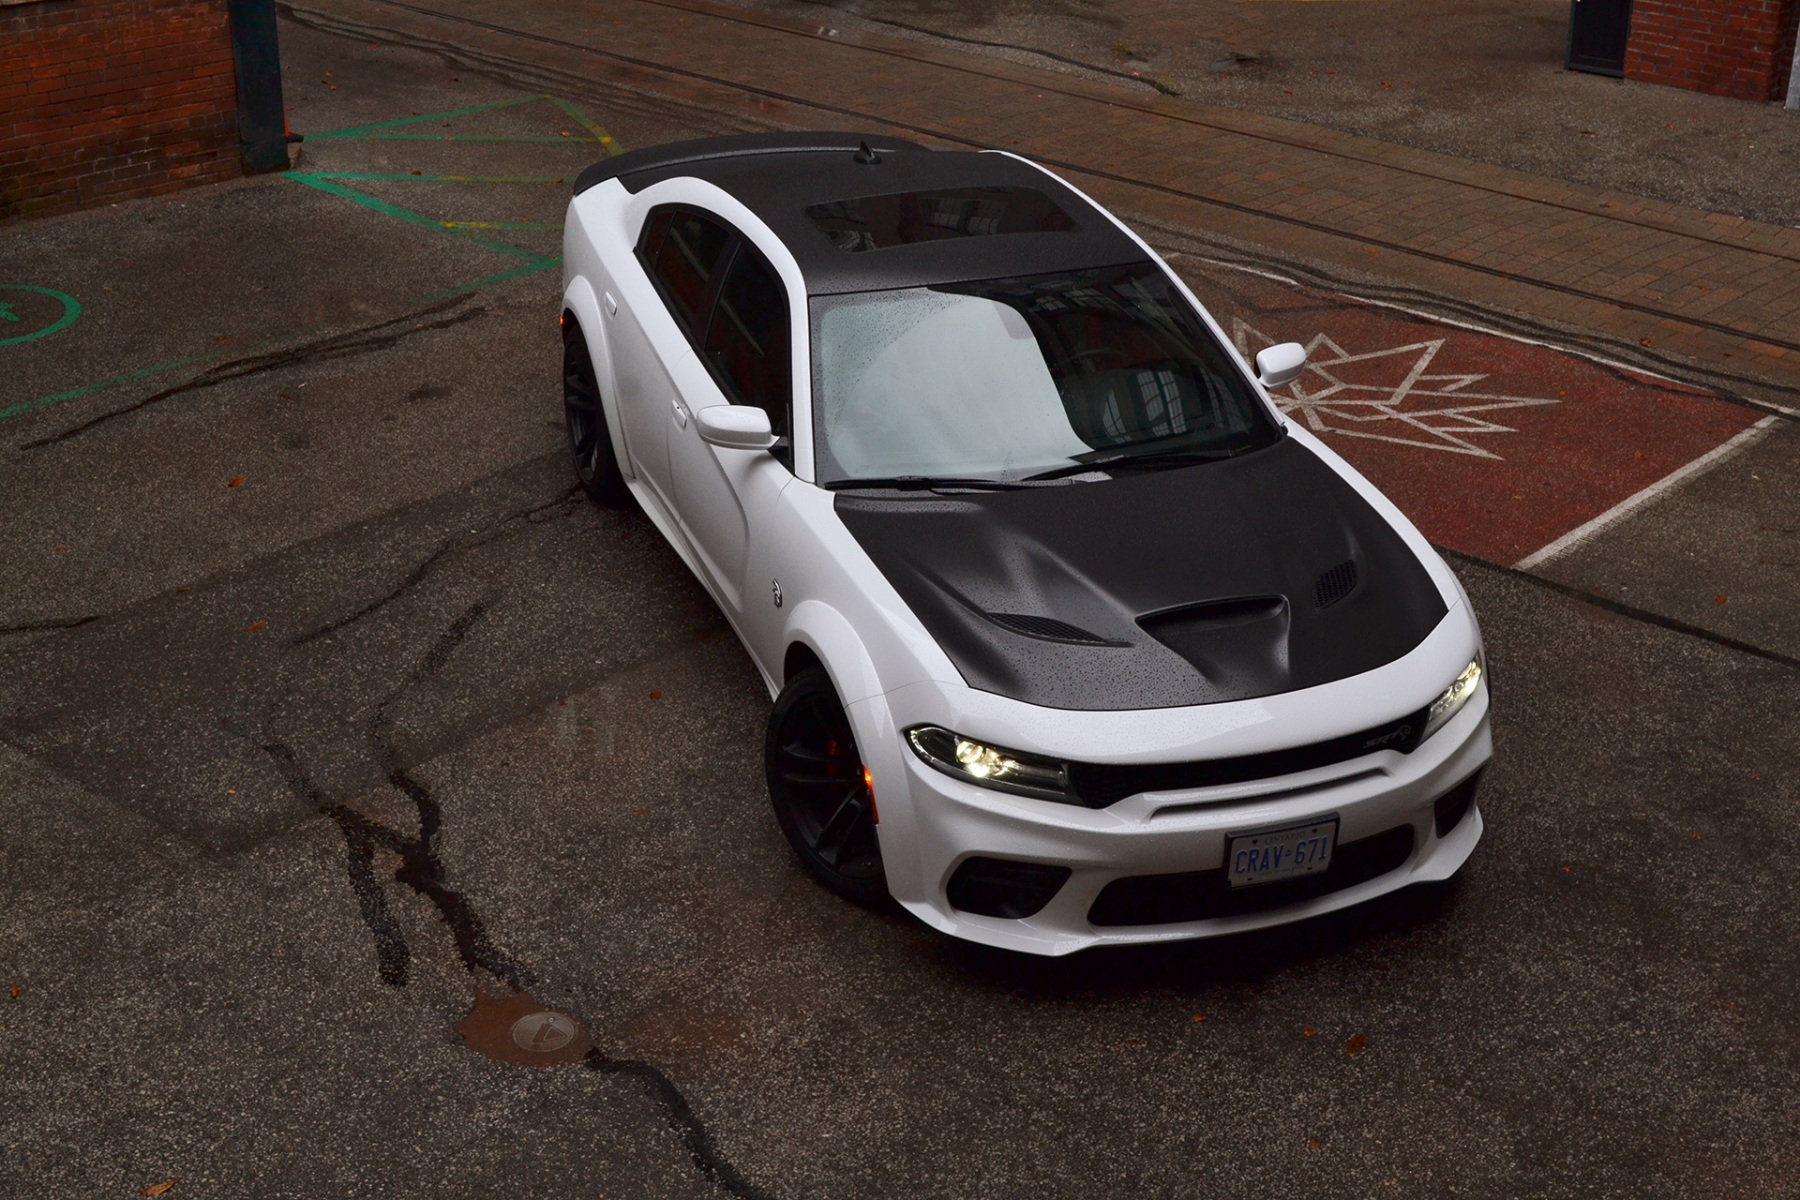 2020 Dodge Charger Srt Hellcat Widebody Review The Friendly Demon Autoguide Com